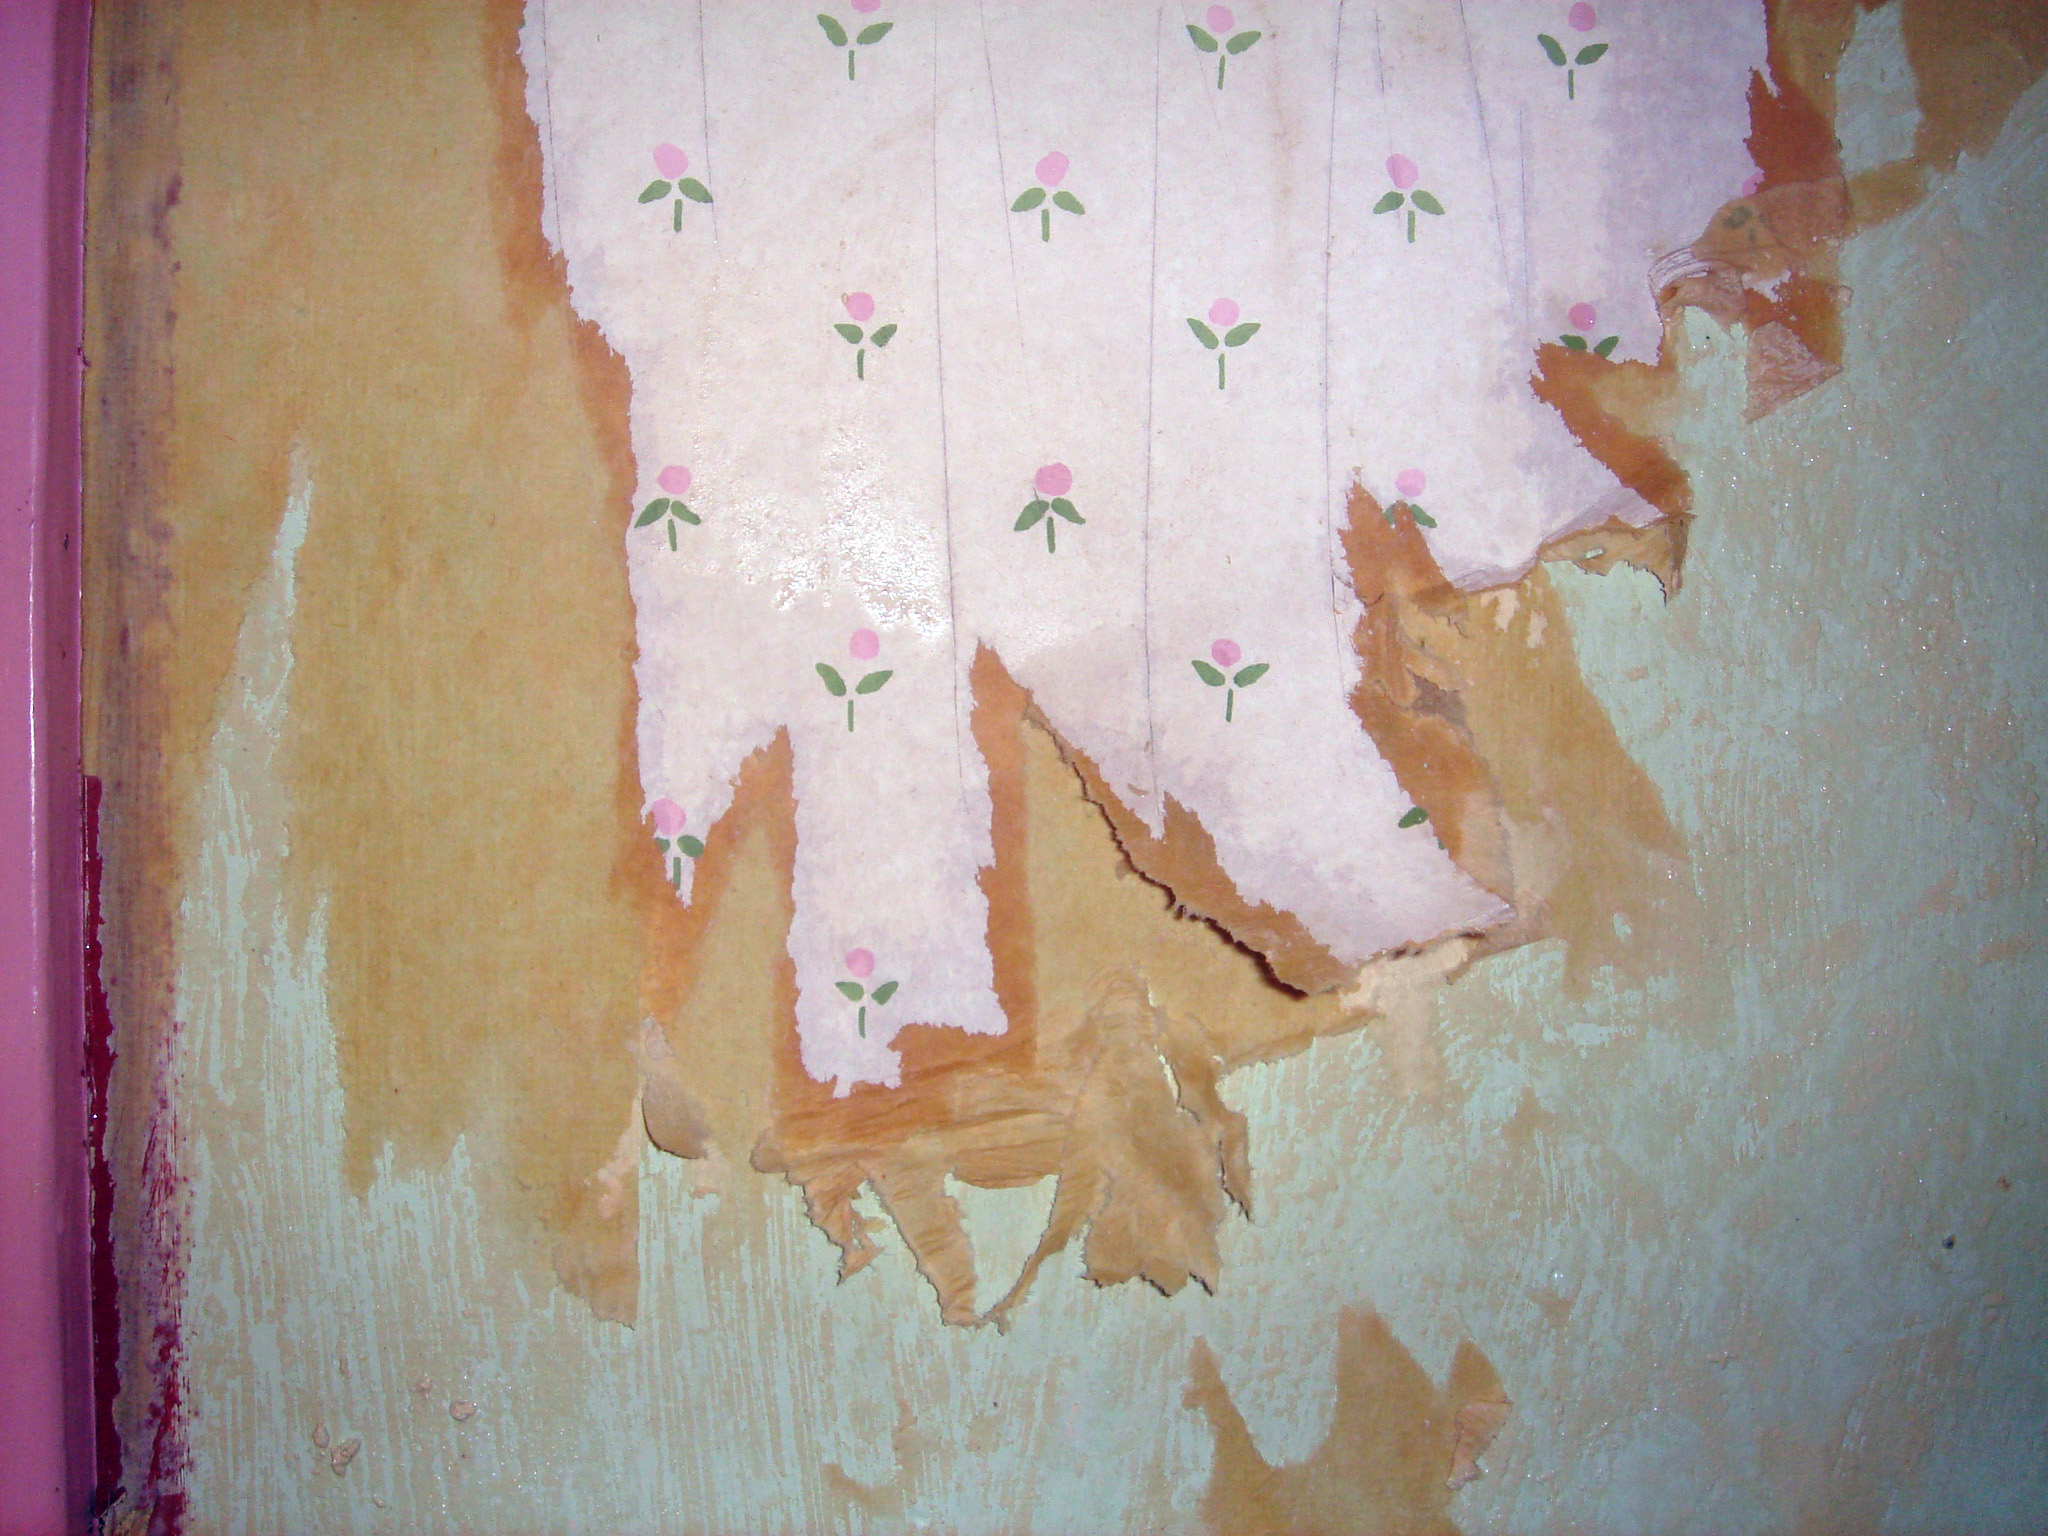 Renovation   Wallpaper Stripping The Artsy Crafter 2048x1536